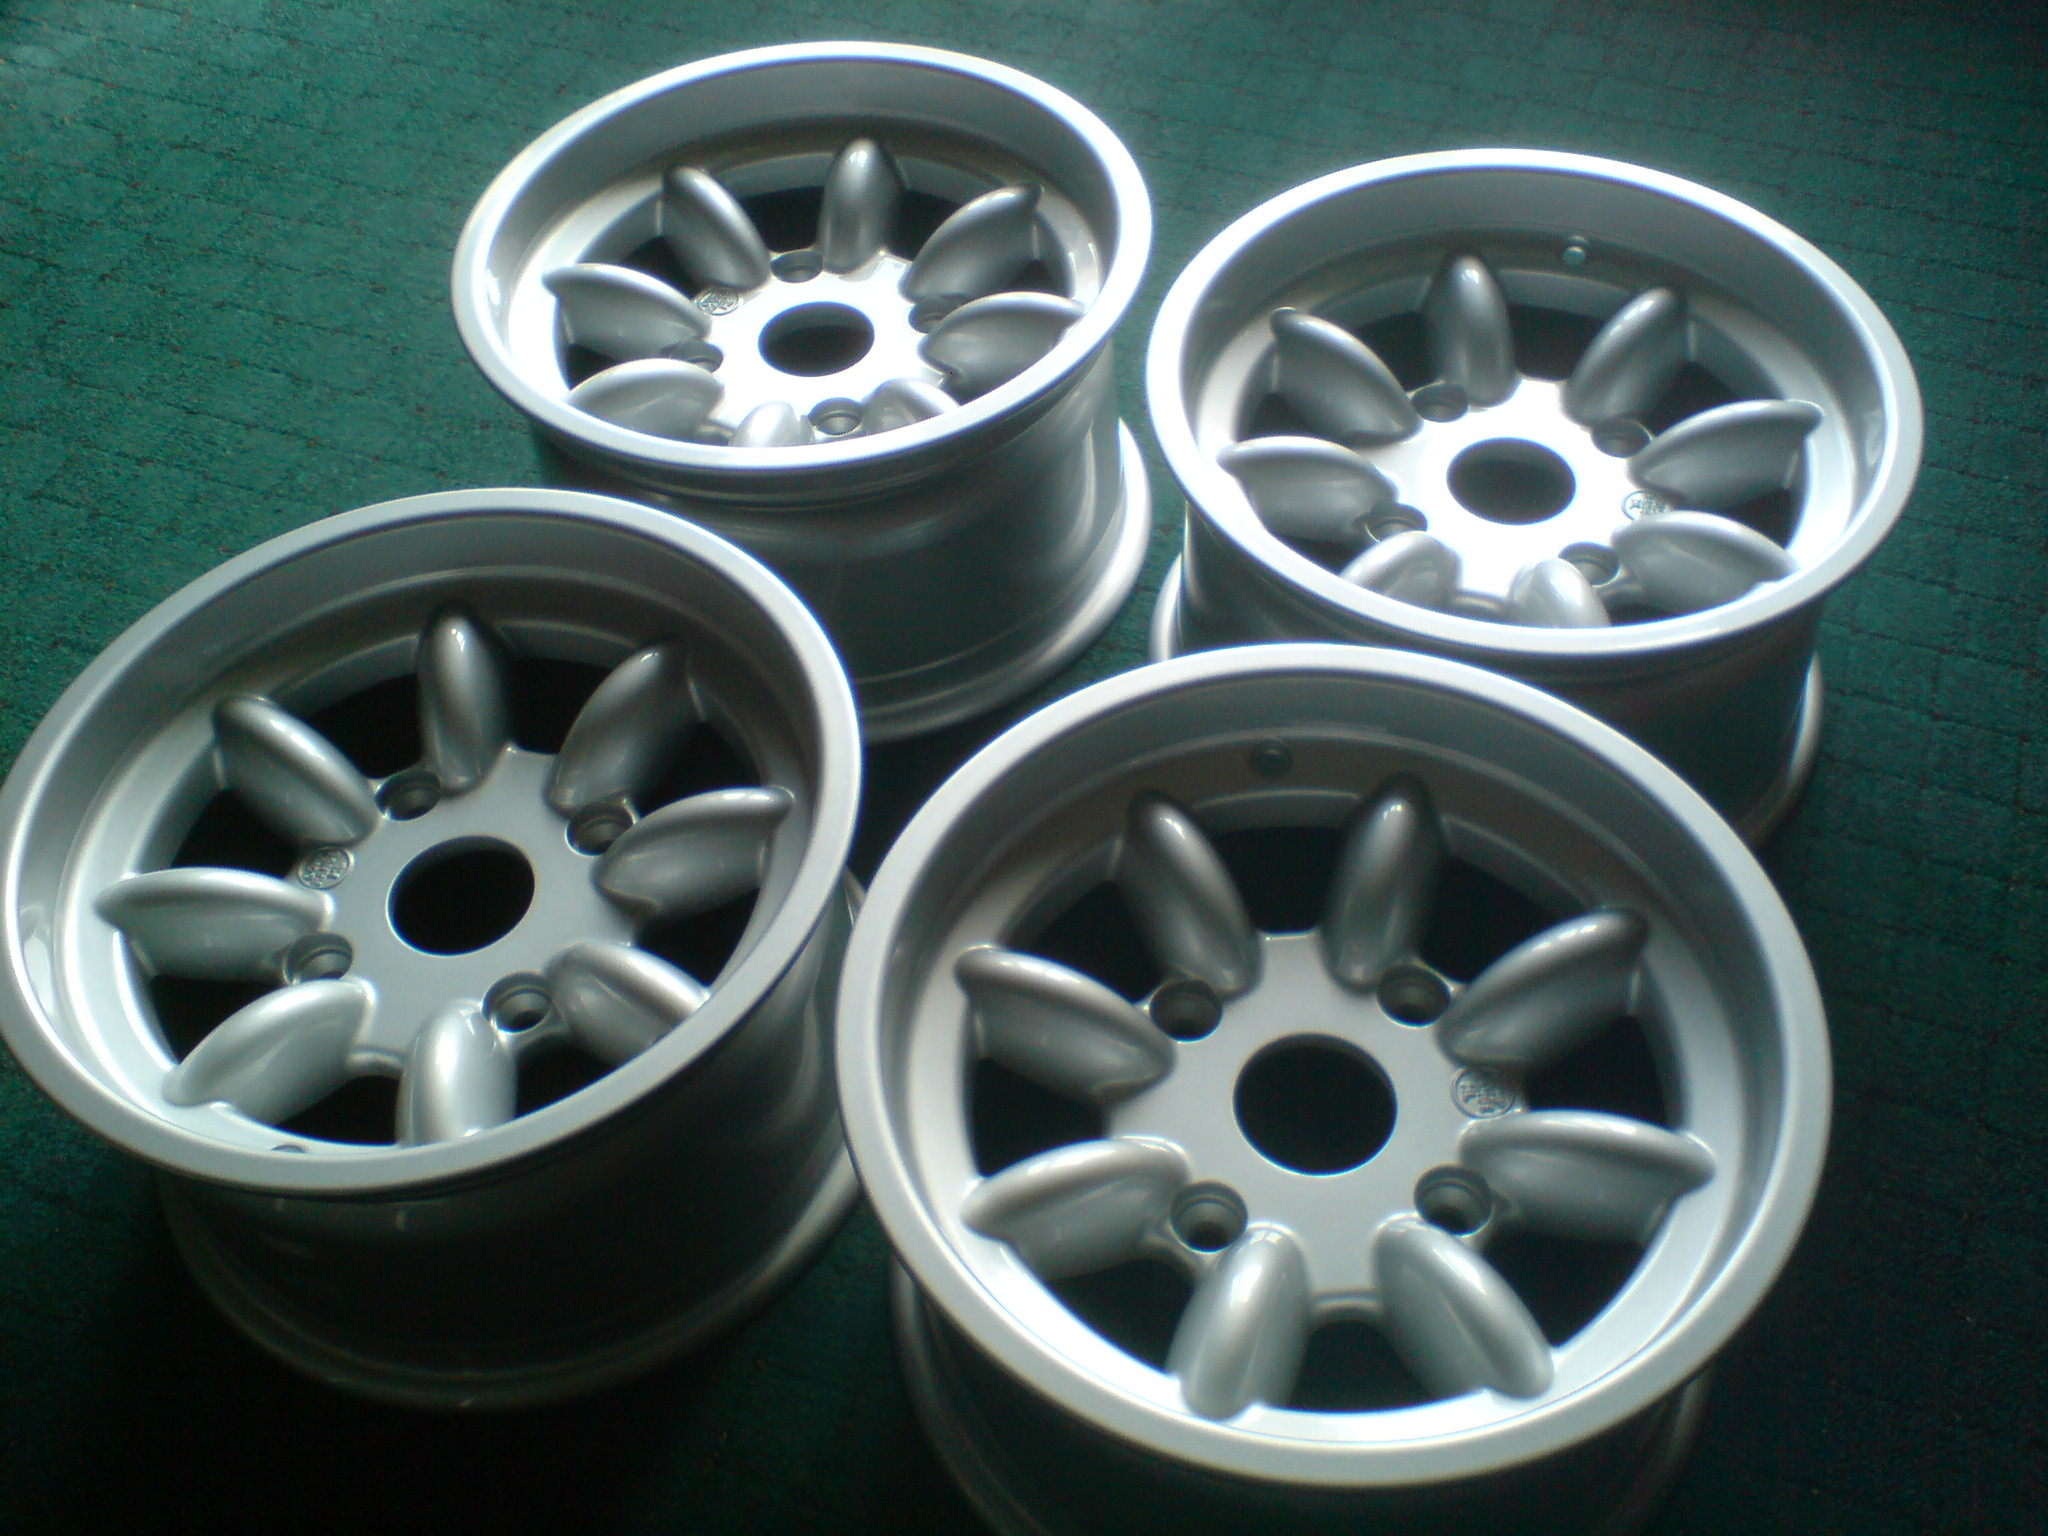 I Just Thought I D Share My Brand New Rims For My Koda With You Guys It S Hard To Find